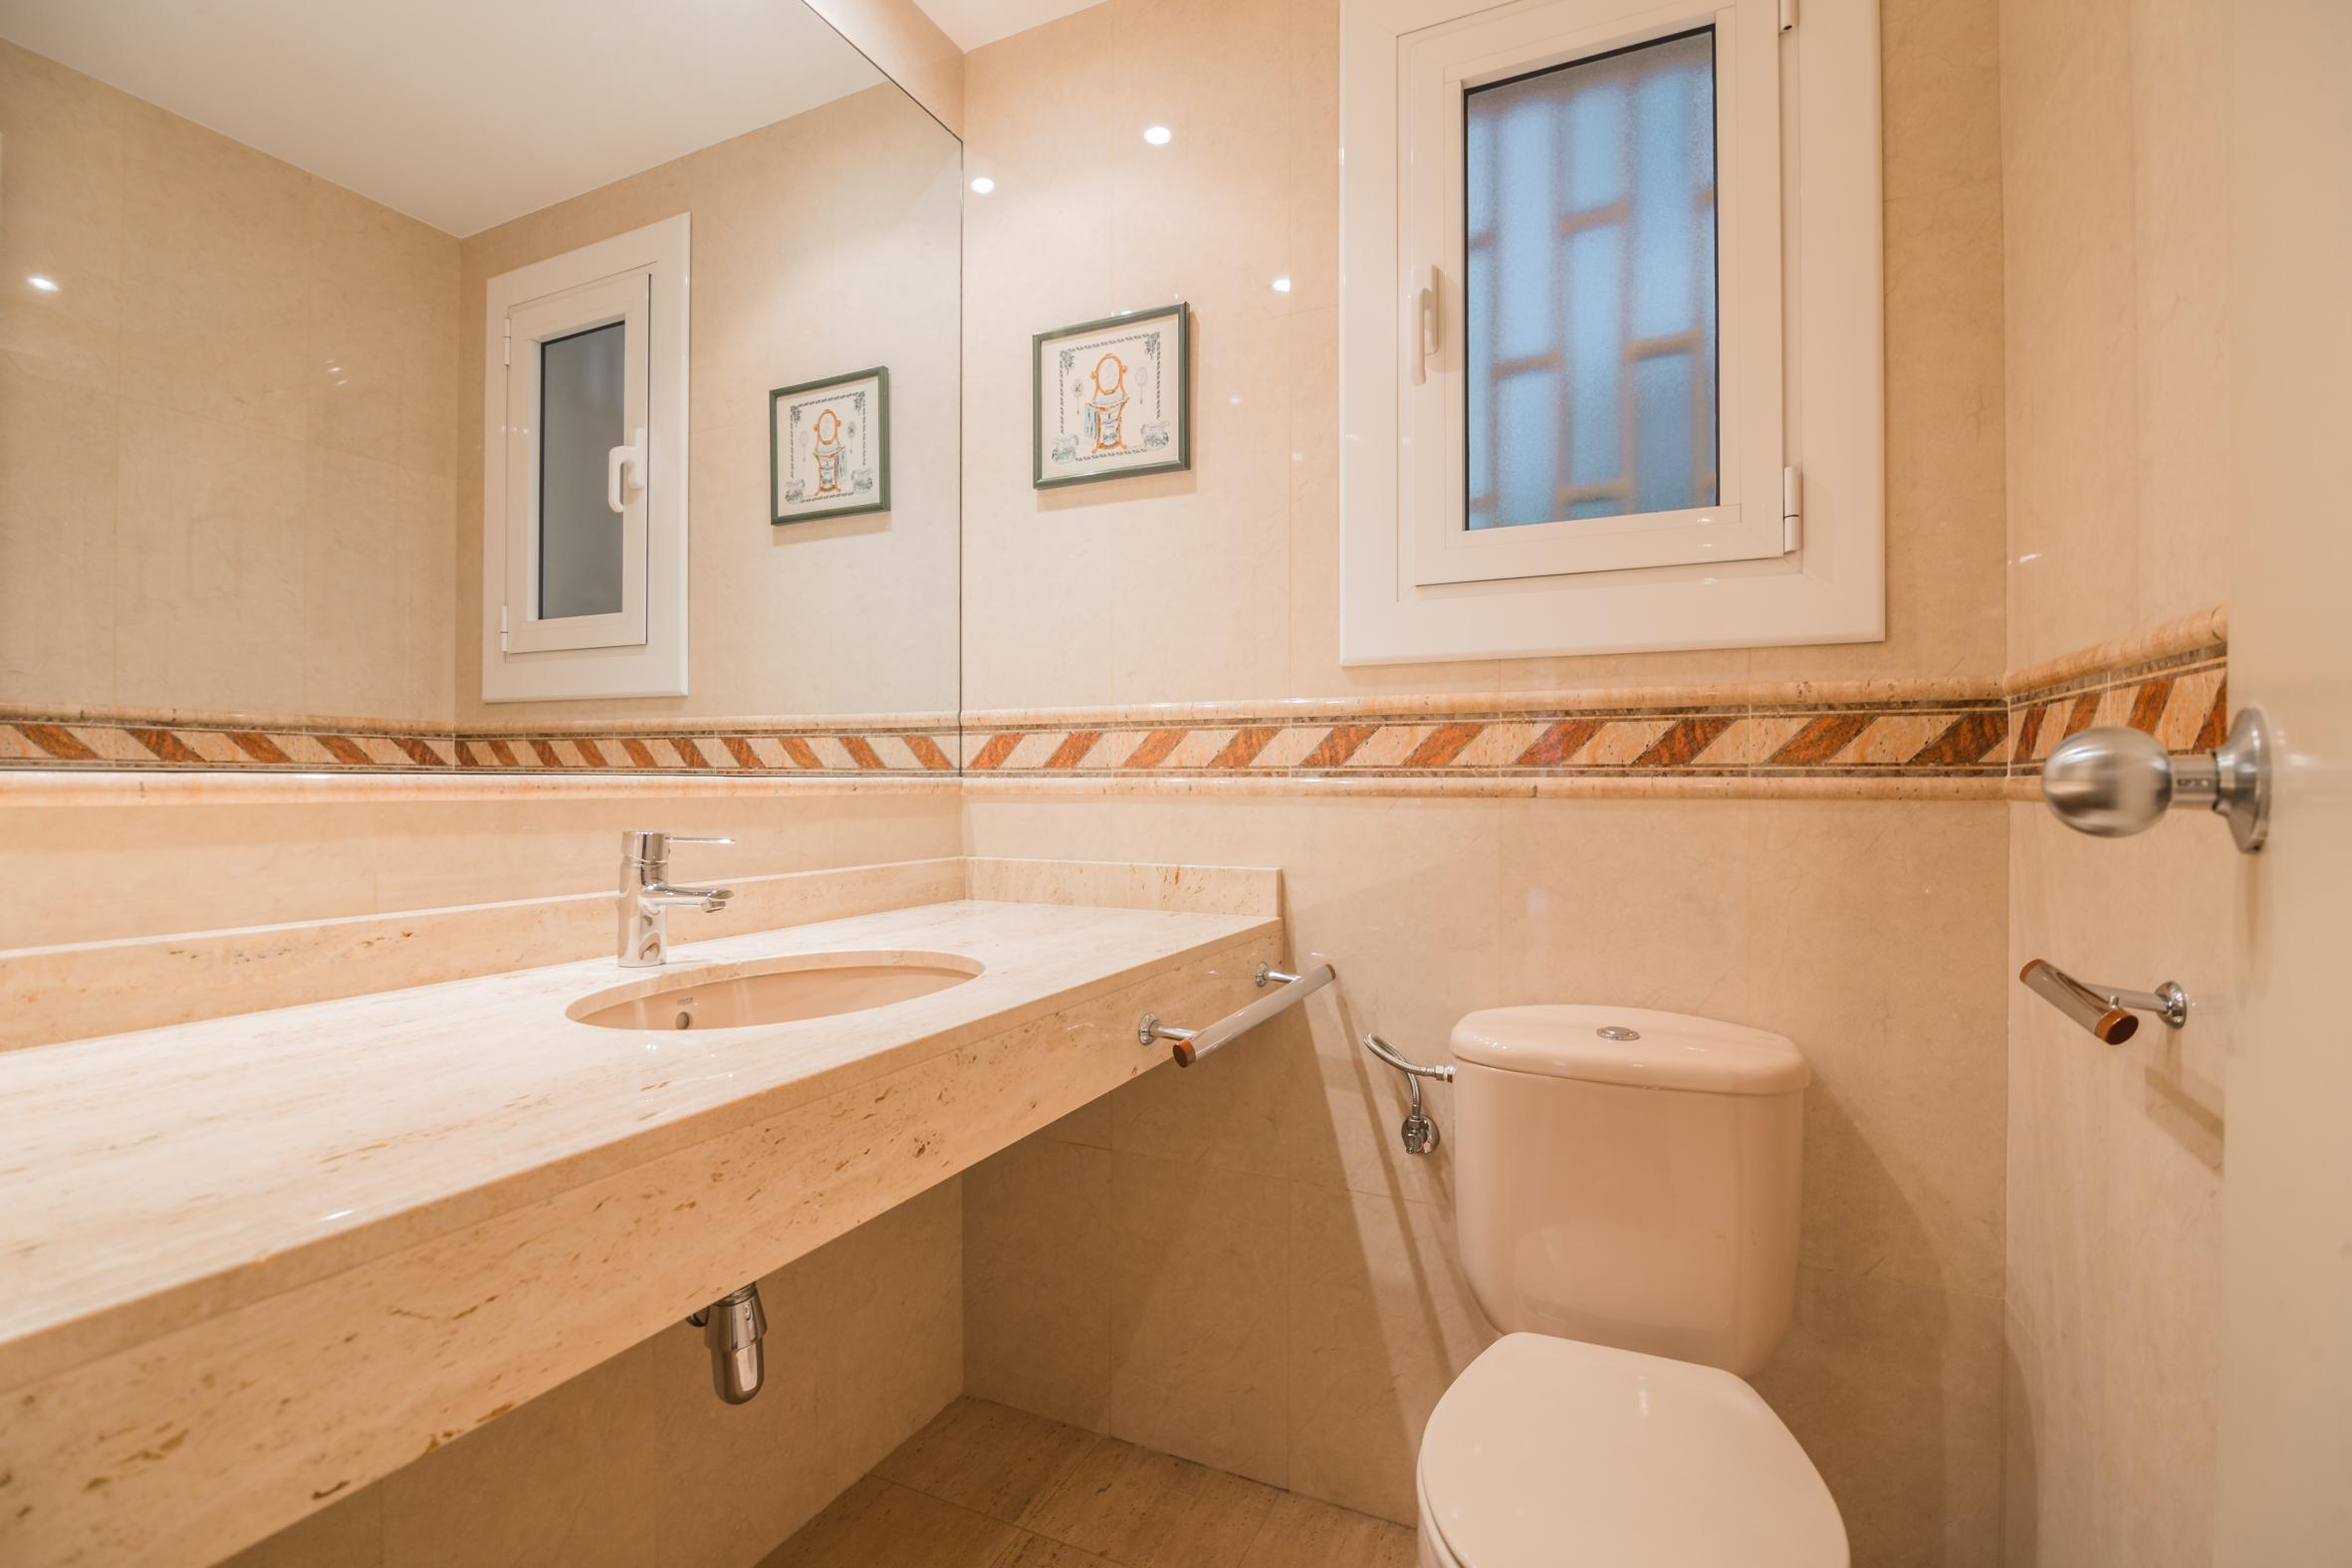 246902 Flat for sale in Les Corts, Pedralbes 22